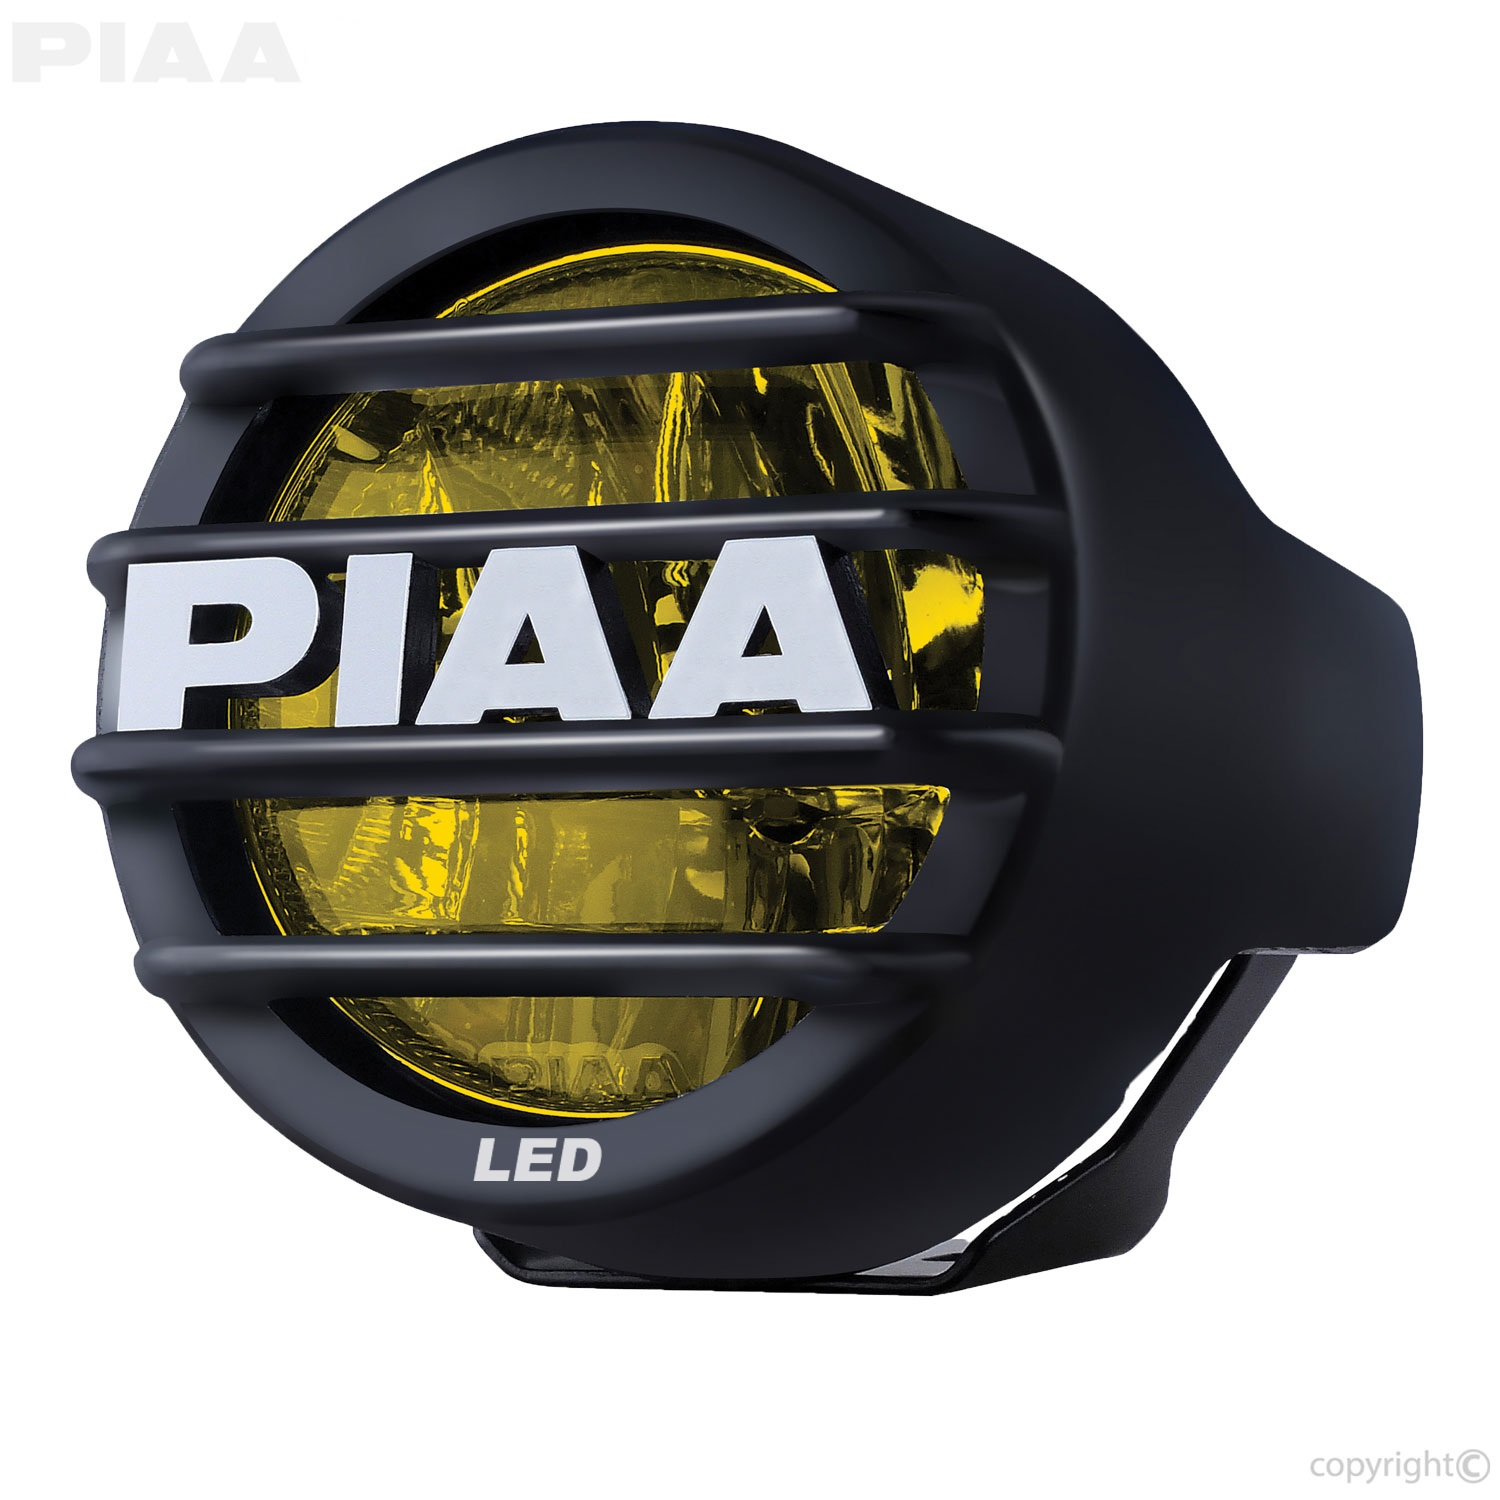 PIAA 12-05300 LP530 LED Fog Lamp; 2 LEDs/8W Each; 3.5 in.; Yellow; Ion; Single; SAE Compliant;